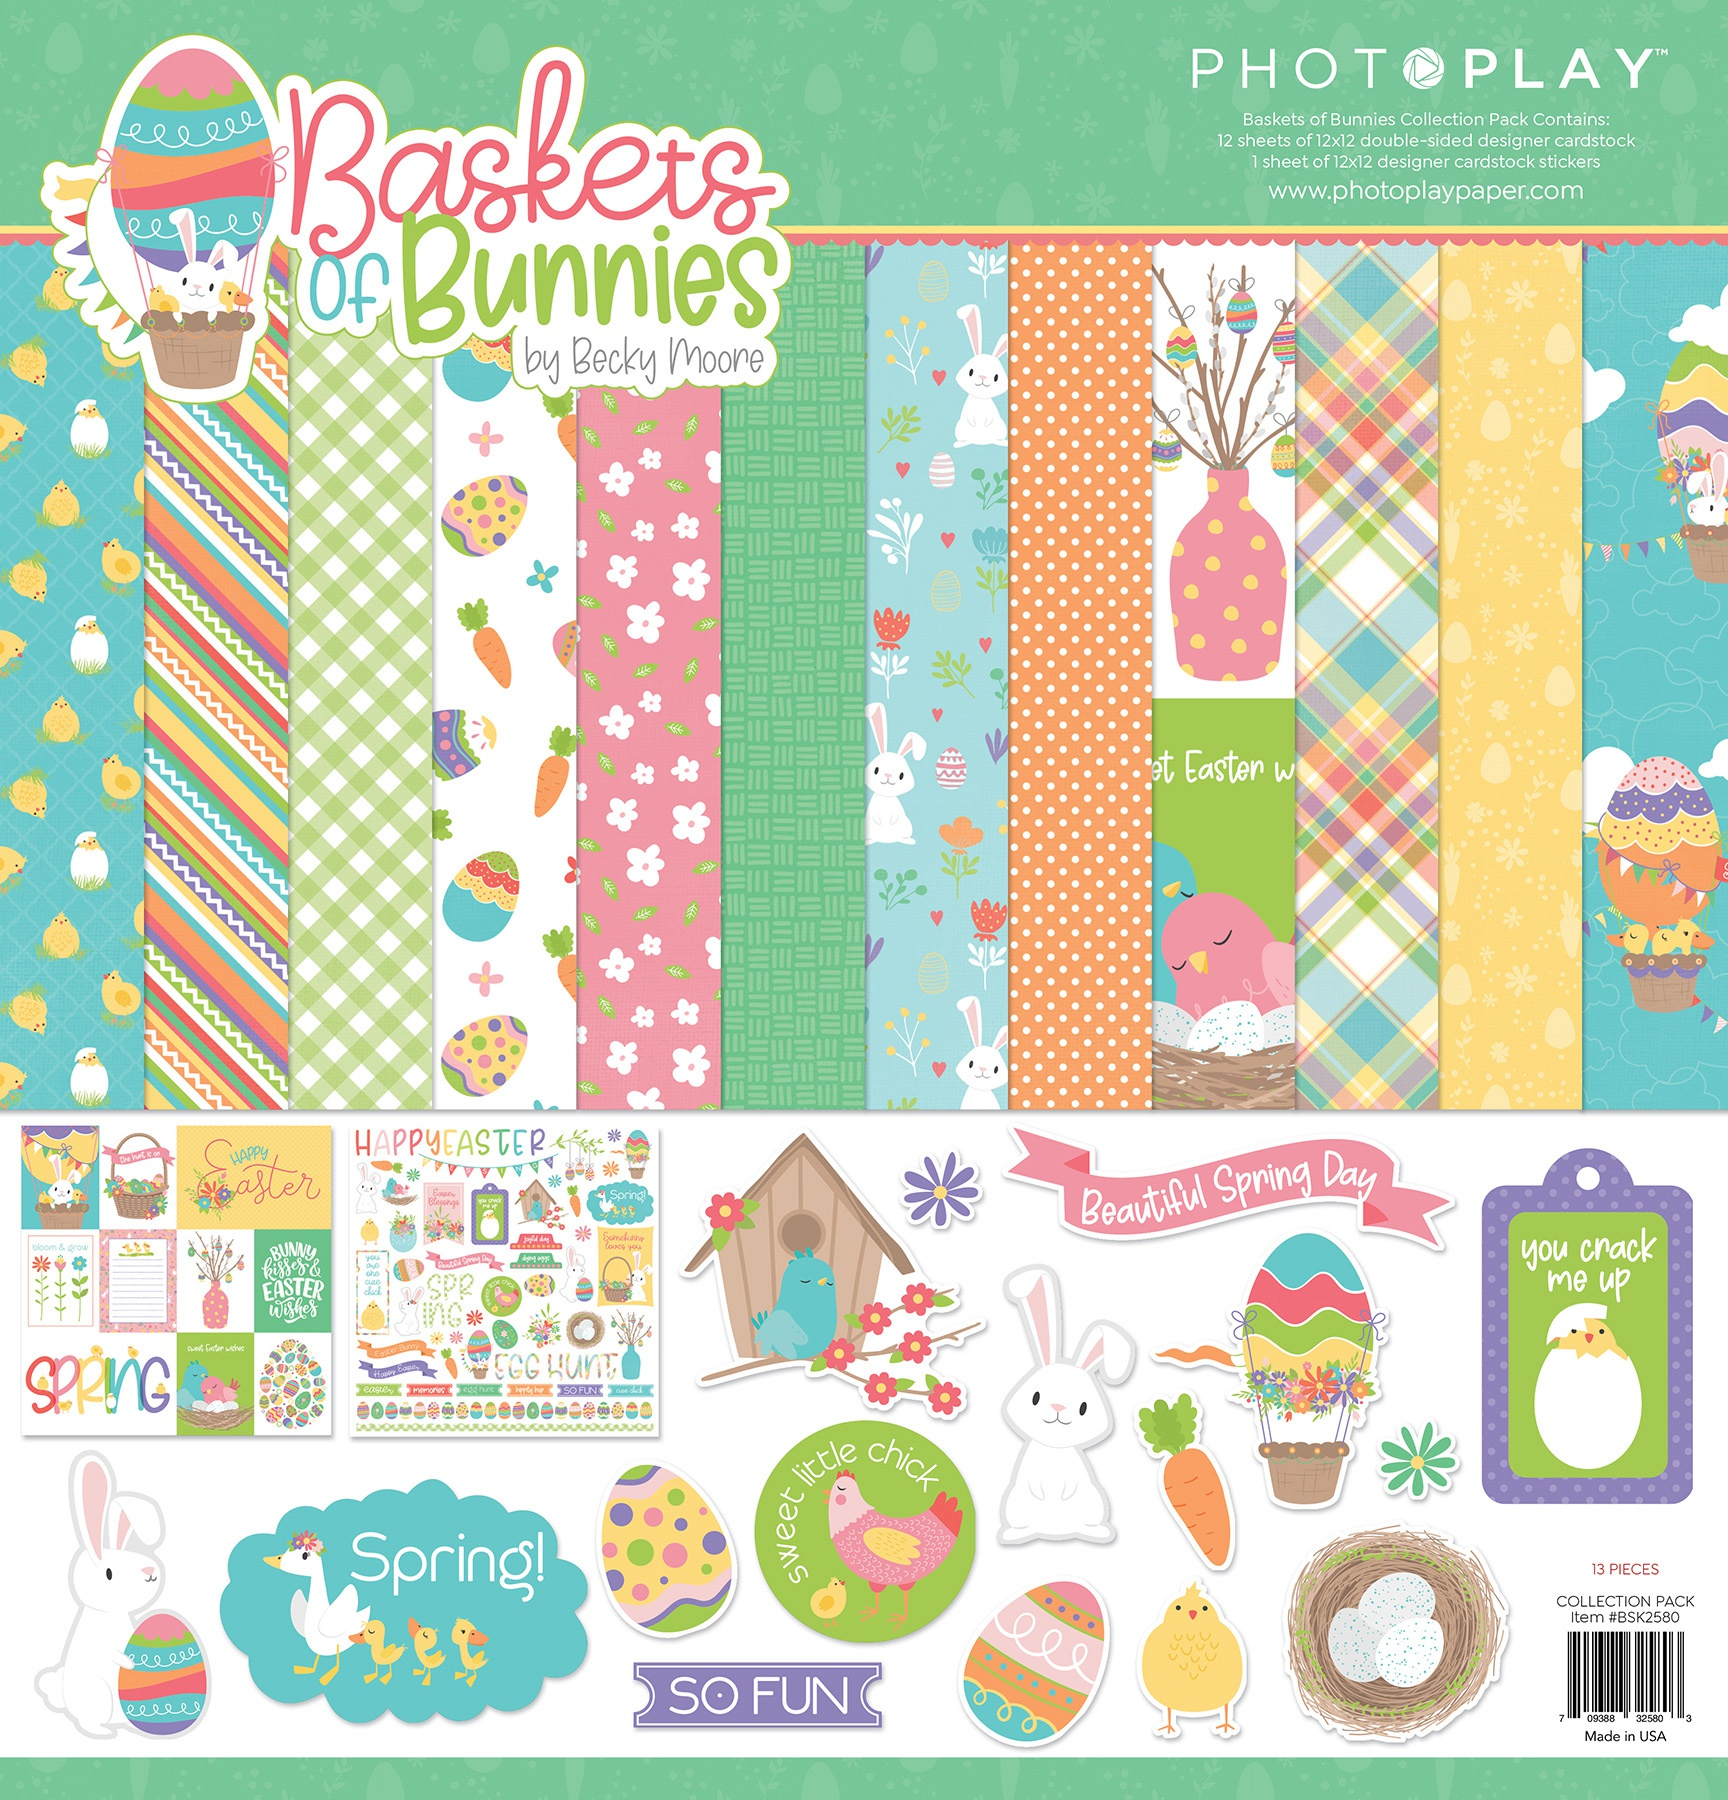 PhotoPlay Baskets of Bunnies Collection Pack 12x12